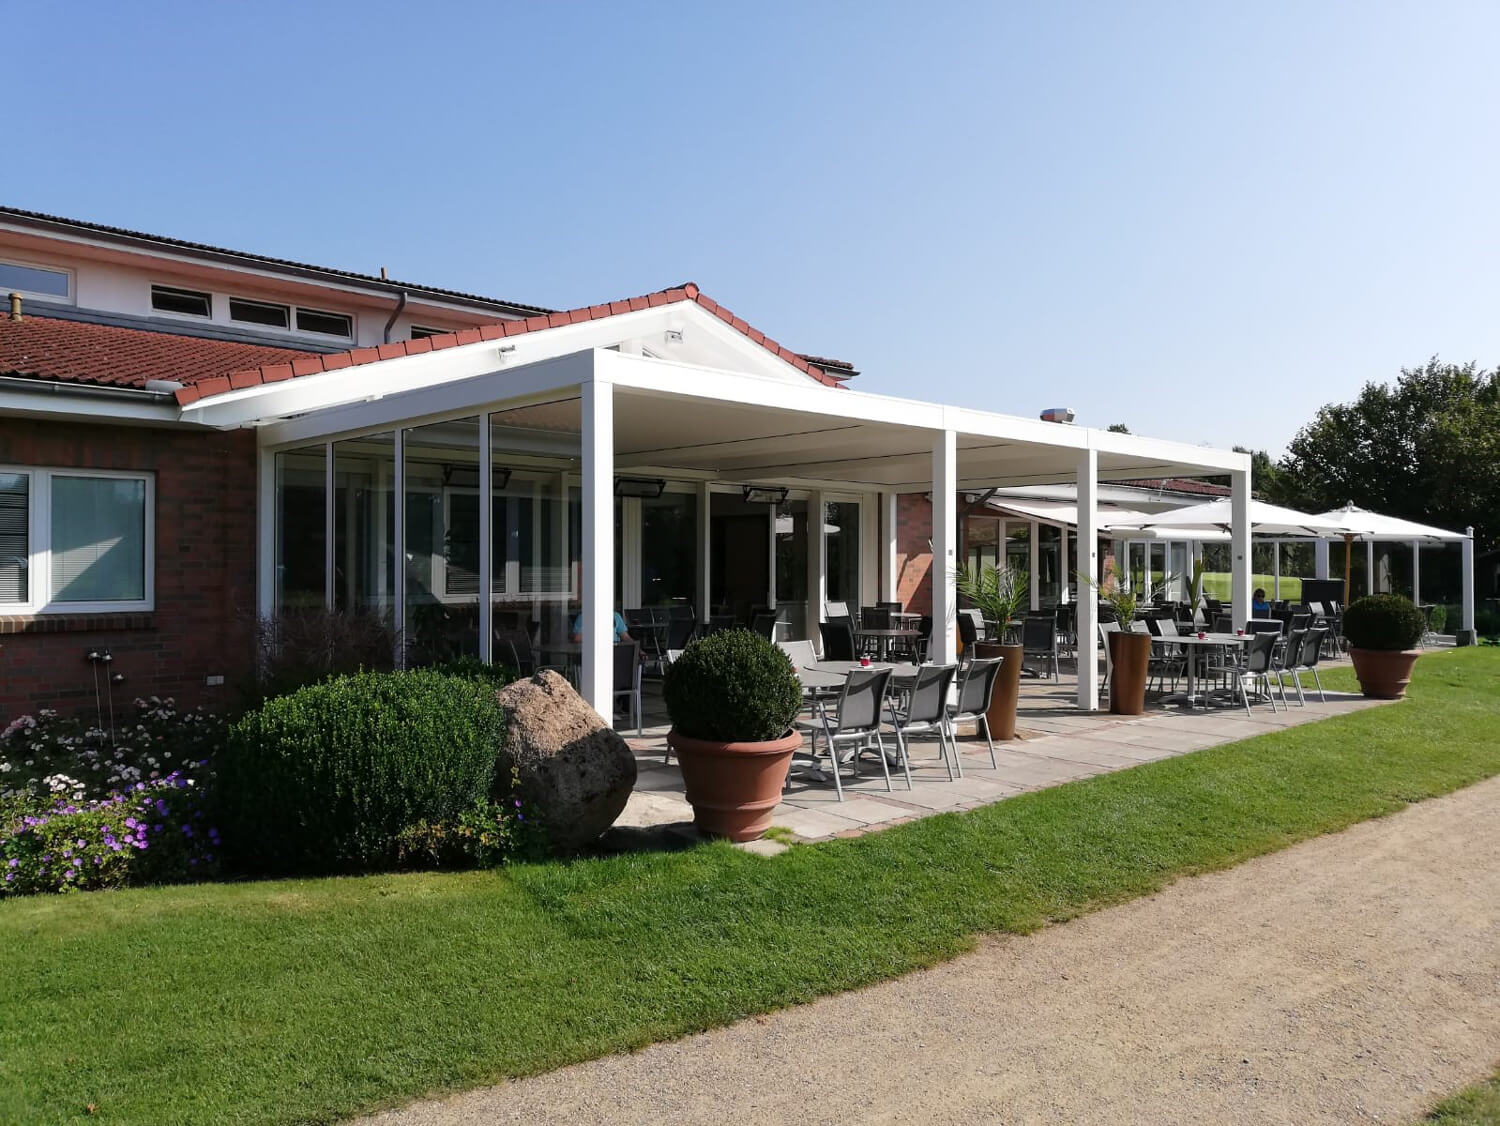 Golf Club Escheburg Terrasse